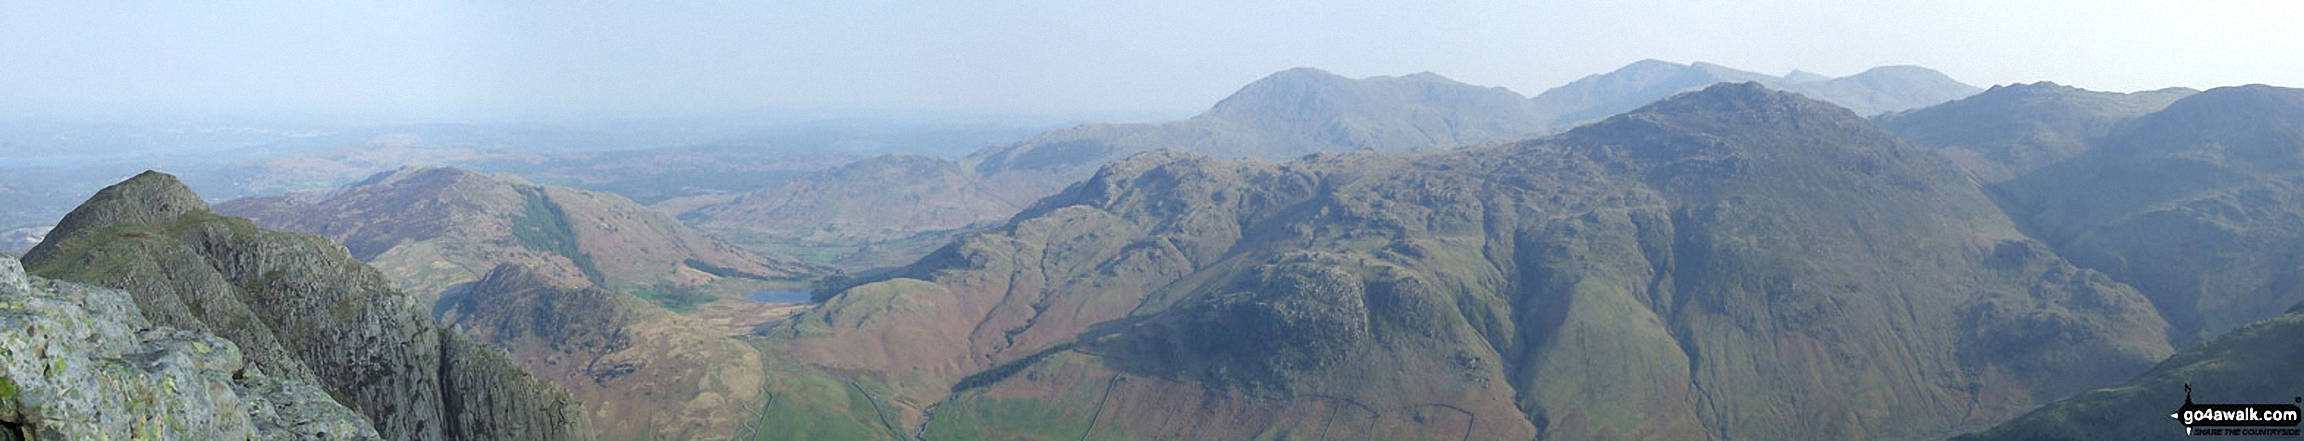 Loft Crag (foreground far left), Lingmoor, Blea Tarn, Pike of Blisco (Pike o' Blisco), Cold Pike and Crinkle Crags (featuring Crinkle Crags (South Top), Crinkle Crags (Long Top) and Gunson Knott) (mid-distance left to right) and Wetherlam, Great Carrs and Grey Friar (far-distance centre to right)  from the summit of Pike of Stickle (Langdale Pikes)